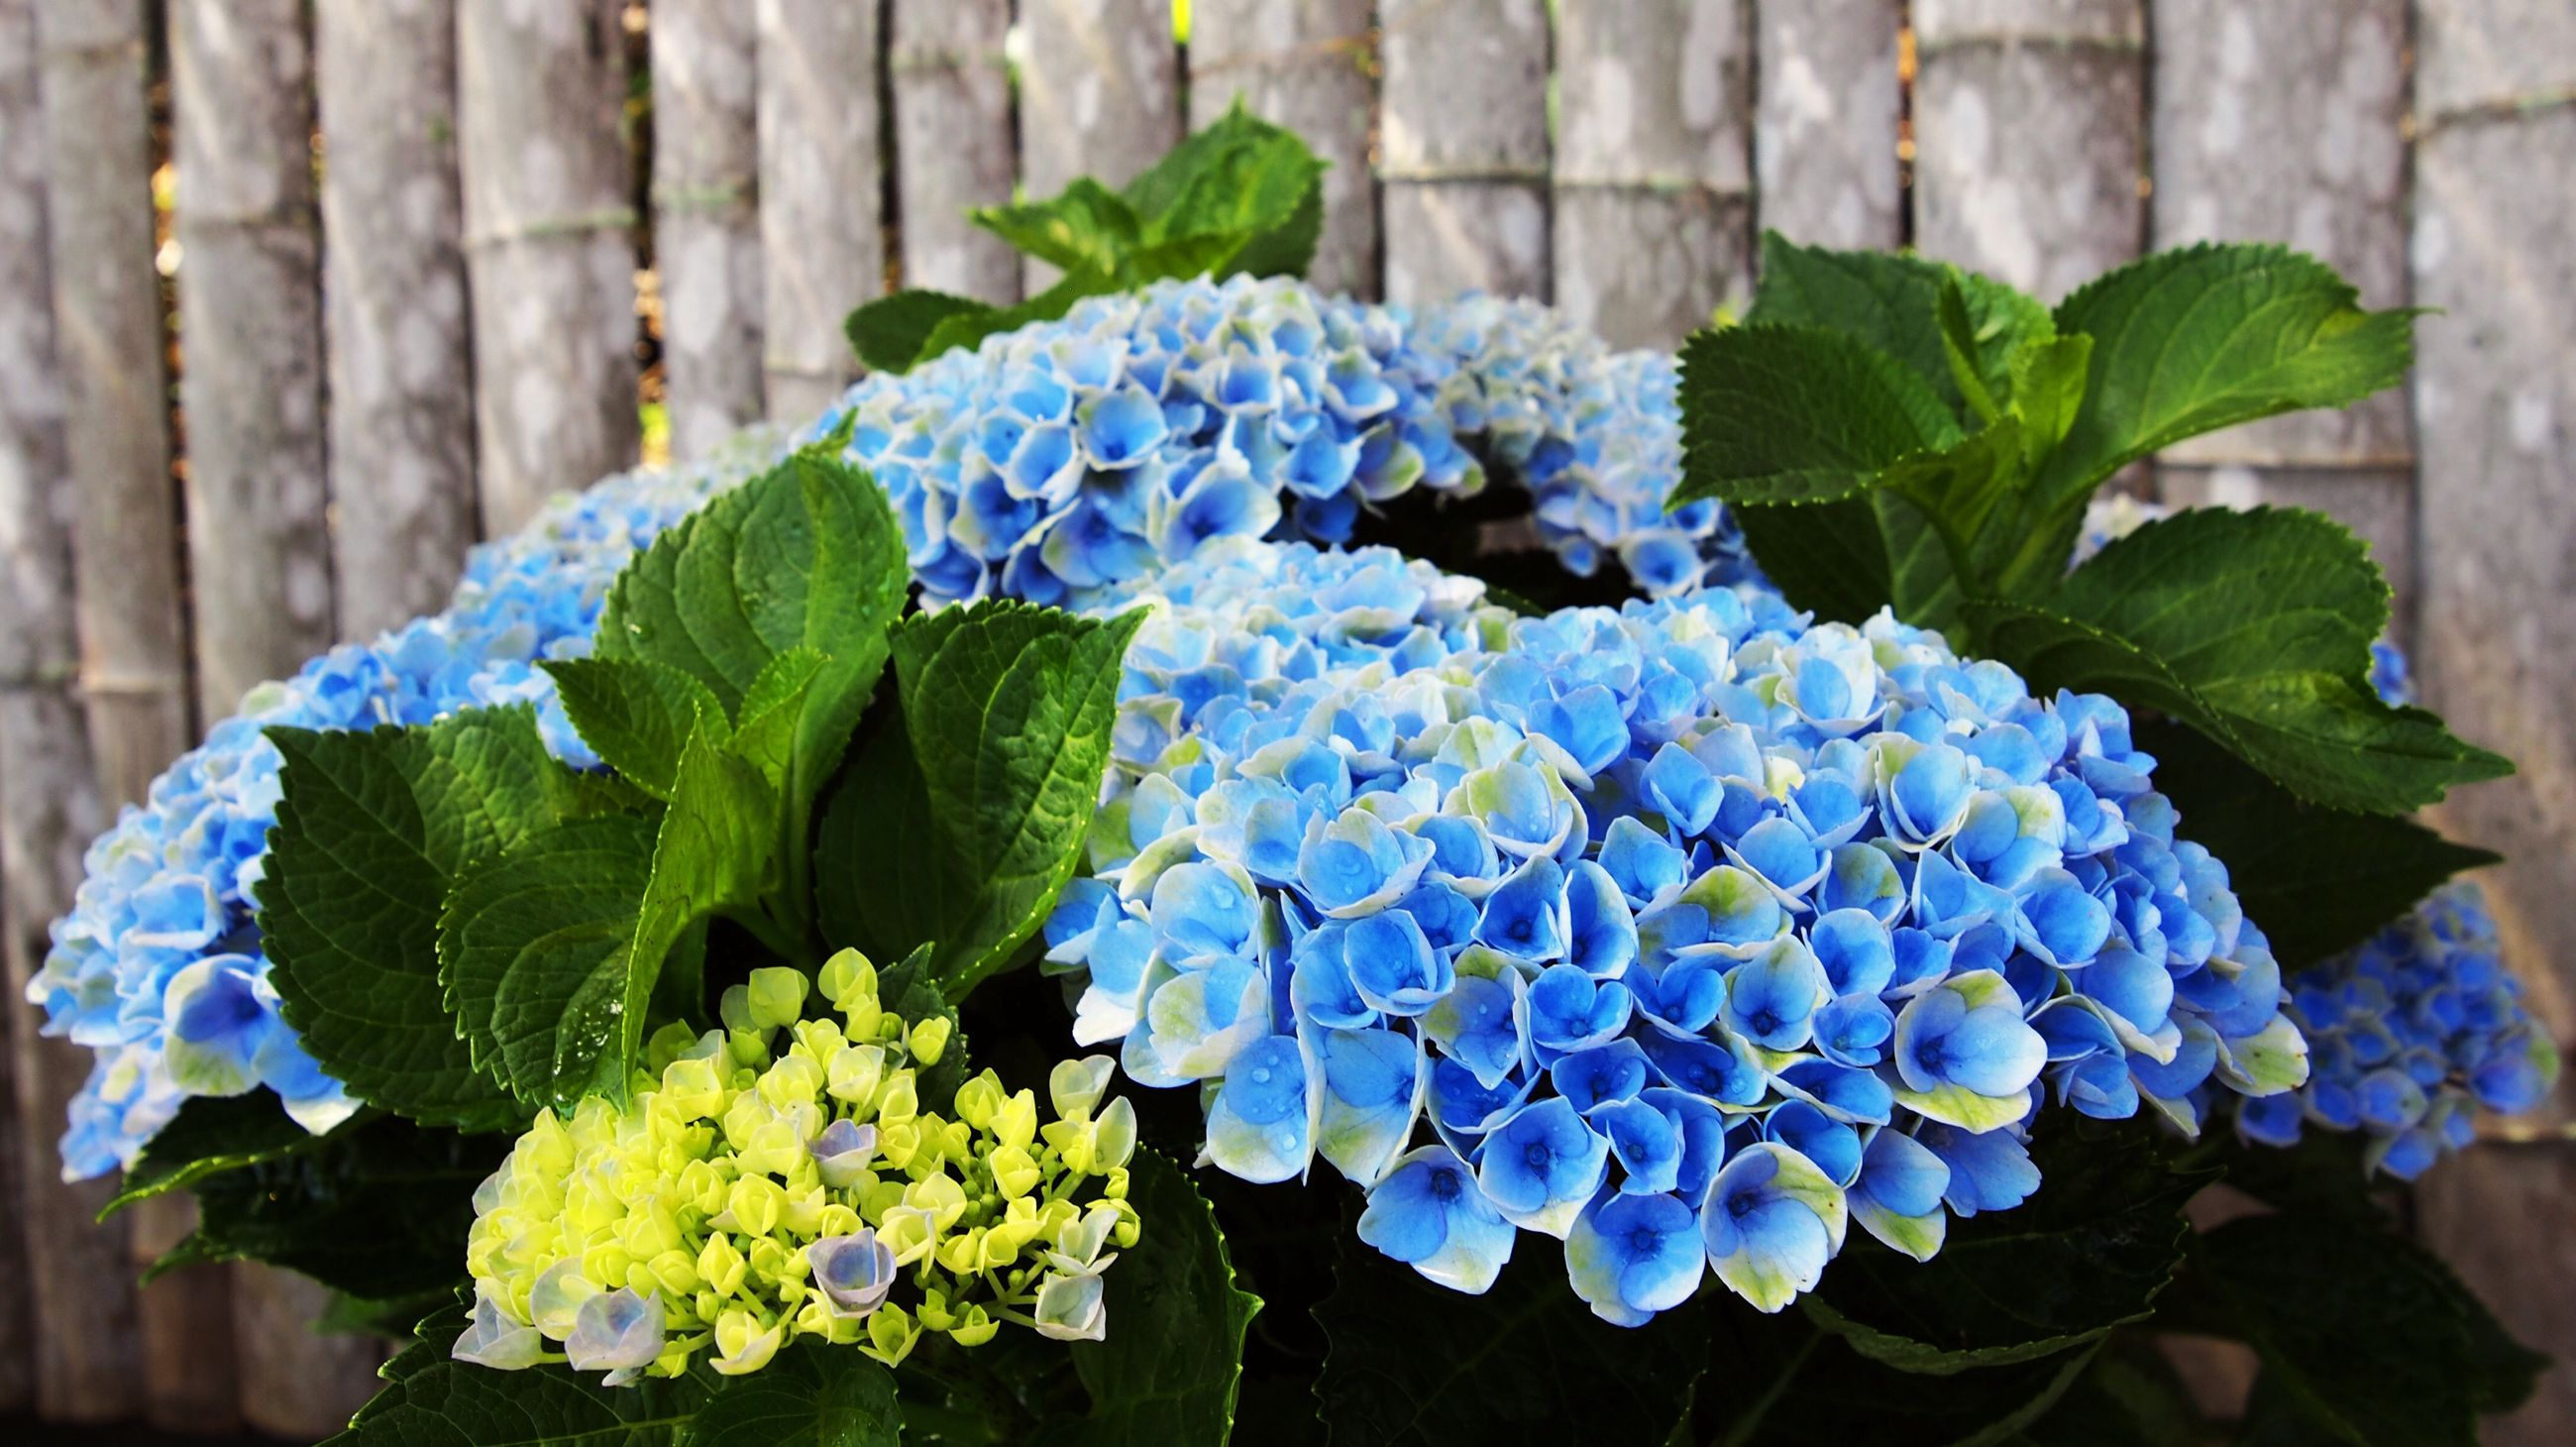 flower, growth, freshness, fragility, beauty in nature, leaf, nature, petal, plant, green color, blue, flower head, outdoors, day, hydrangea, purple, blooming, no people, close-up